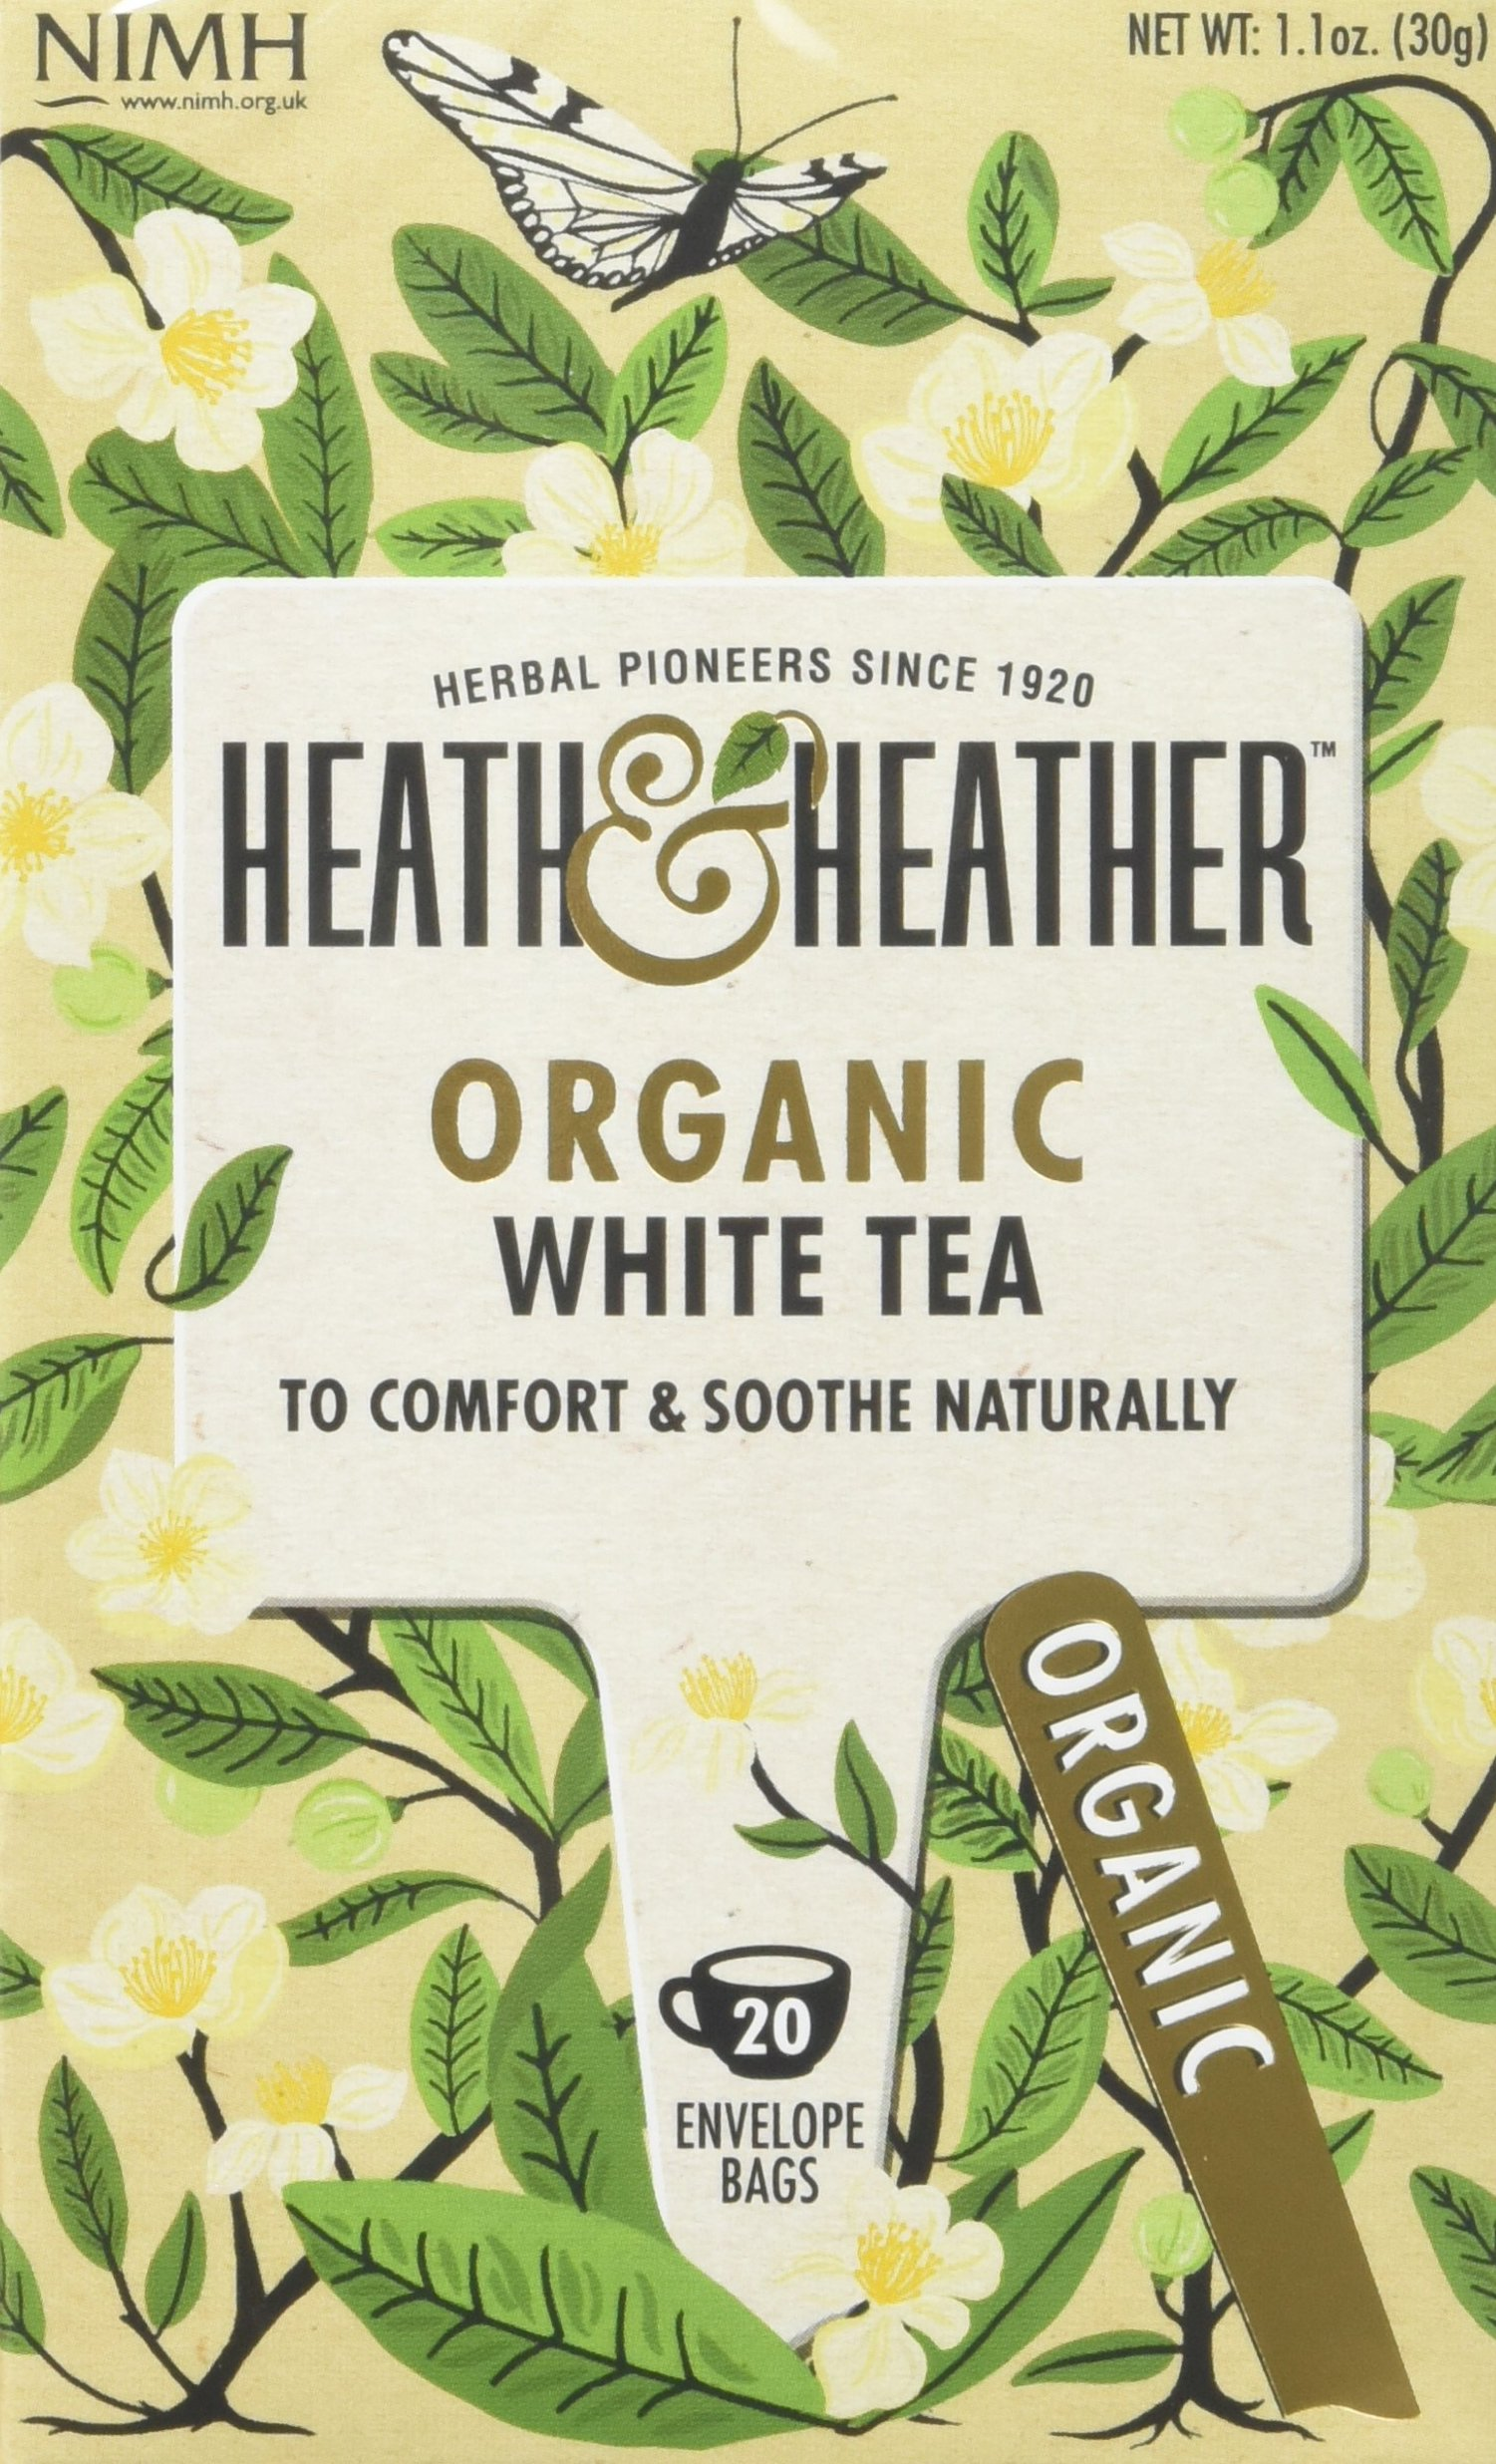 Heath & Heather organic white tea bundle (soil association) (white tea) (6 packs of 20 bags) (120 bags) (brews in 3-5 minutes)